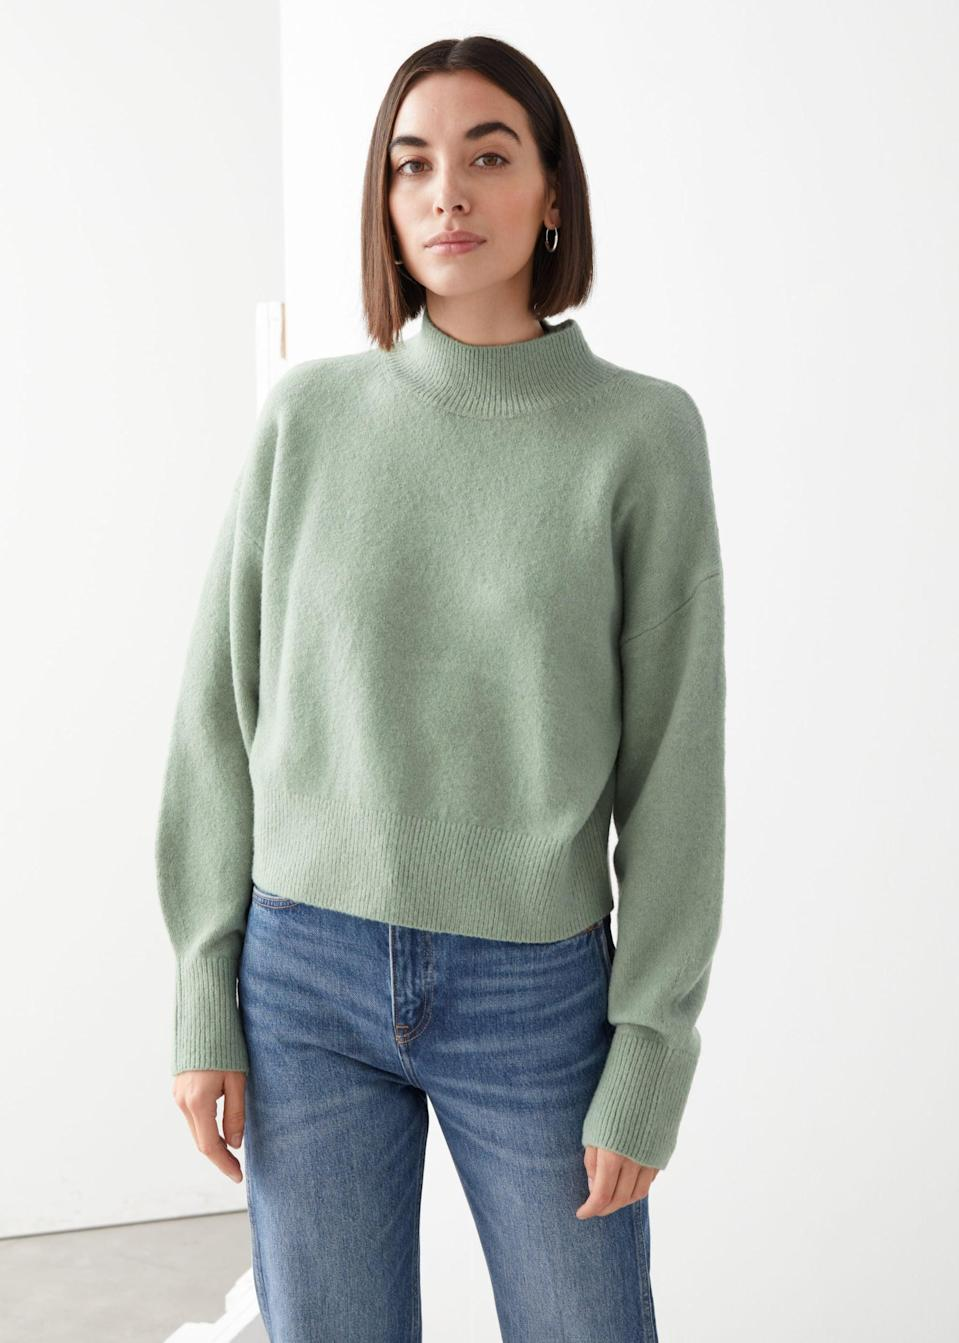 <p>This <span>&amp; Other Stories Mock Neck Sweater</span> ($49) is a classic versatile piece, and it comes in a lots of great colors.</p>